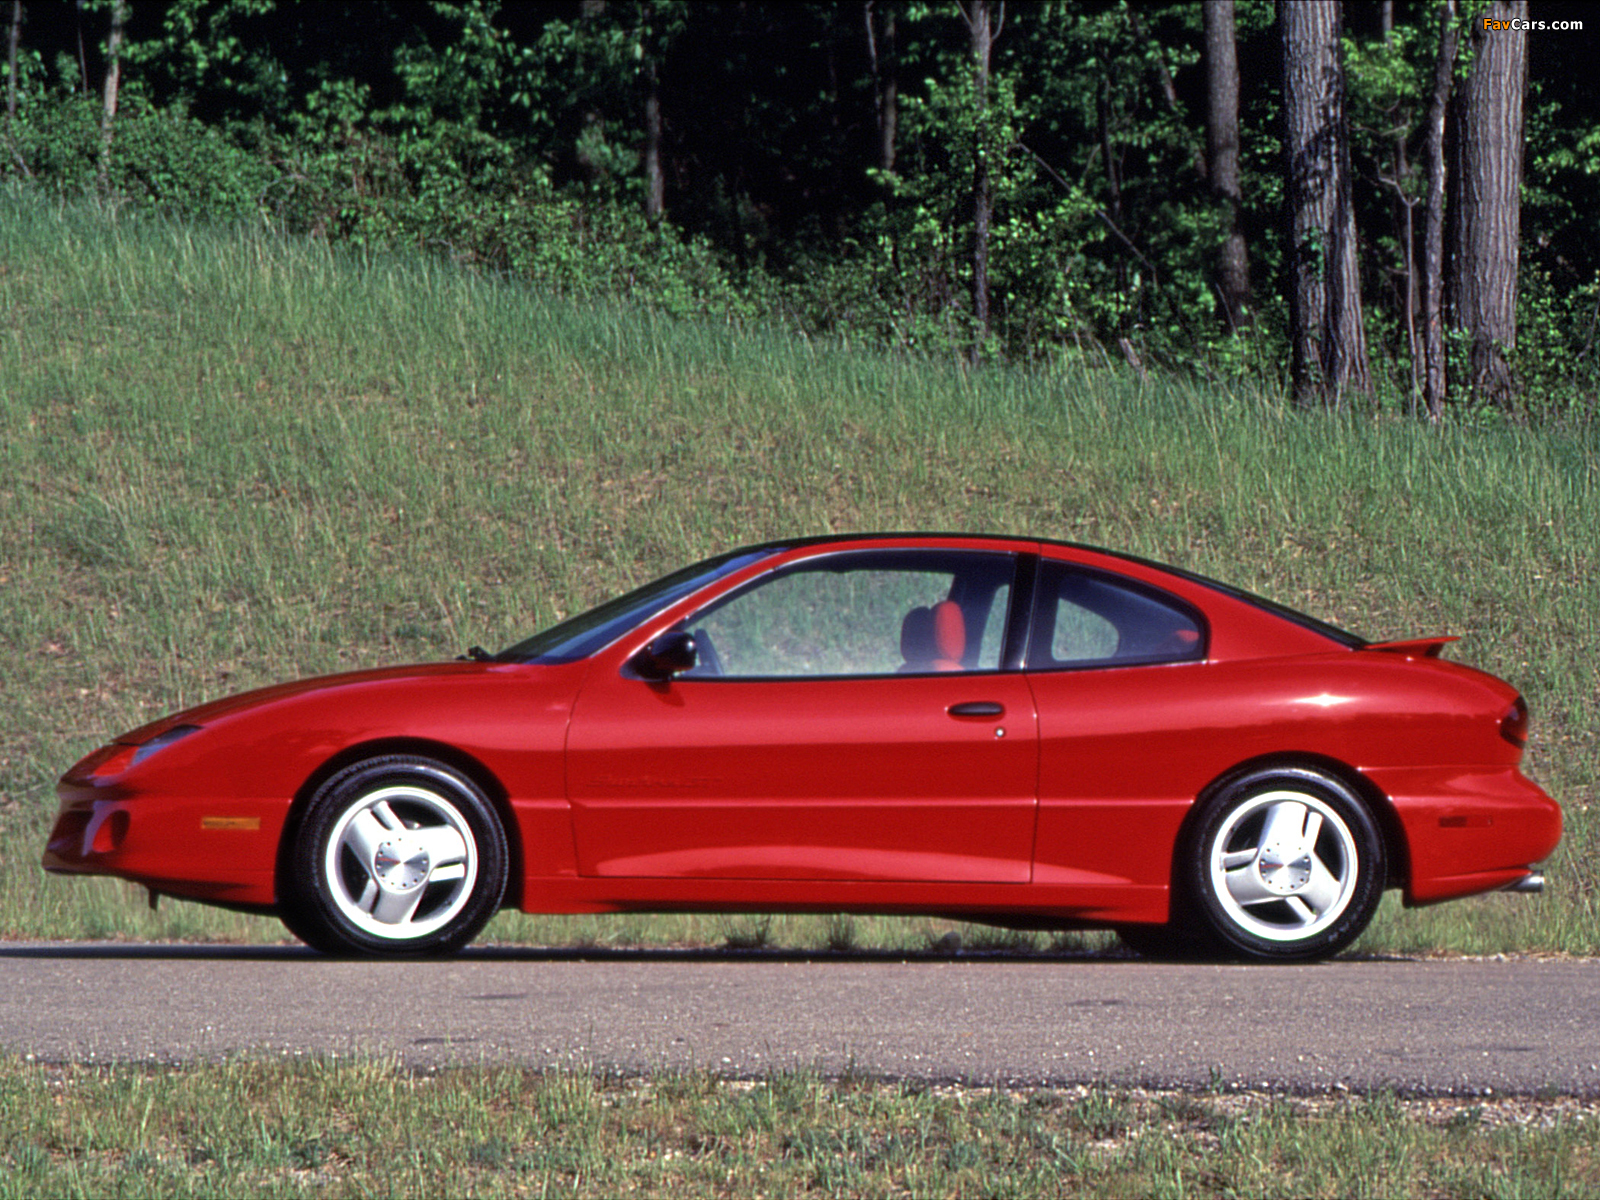 Pontiac Sunfire Gt Coupe 1995 99 Wallpapers 1600x1200